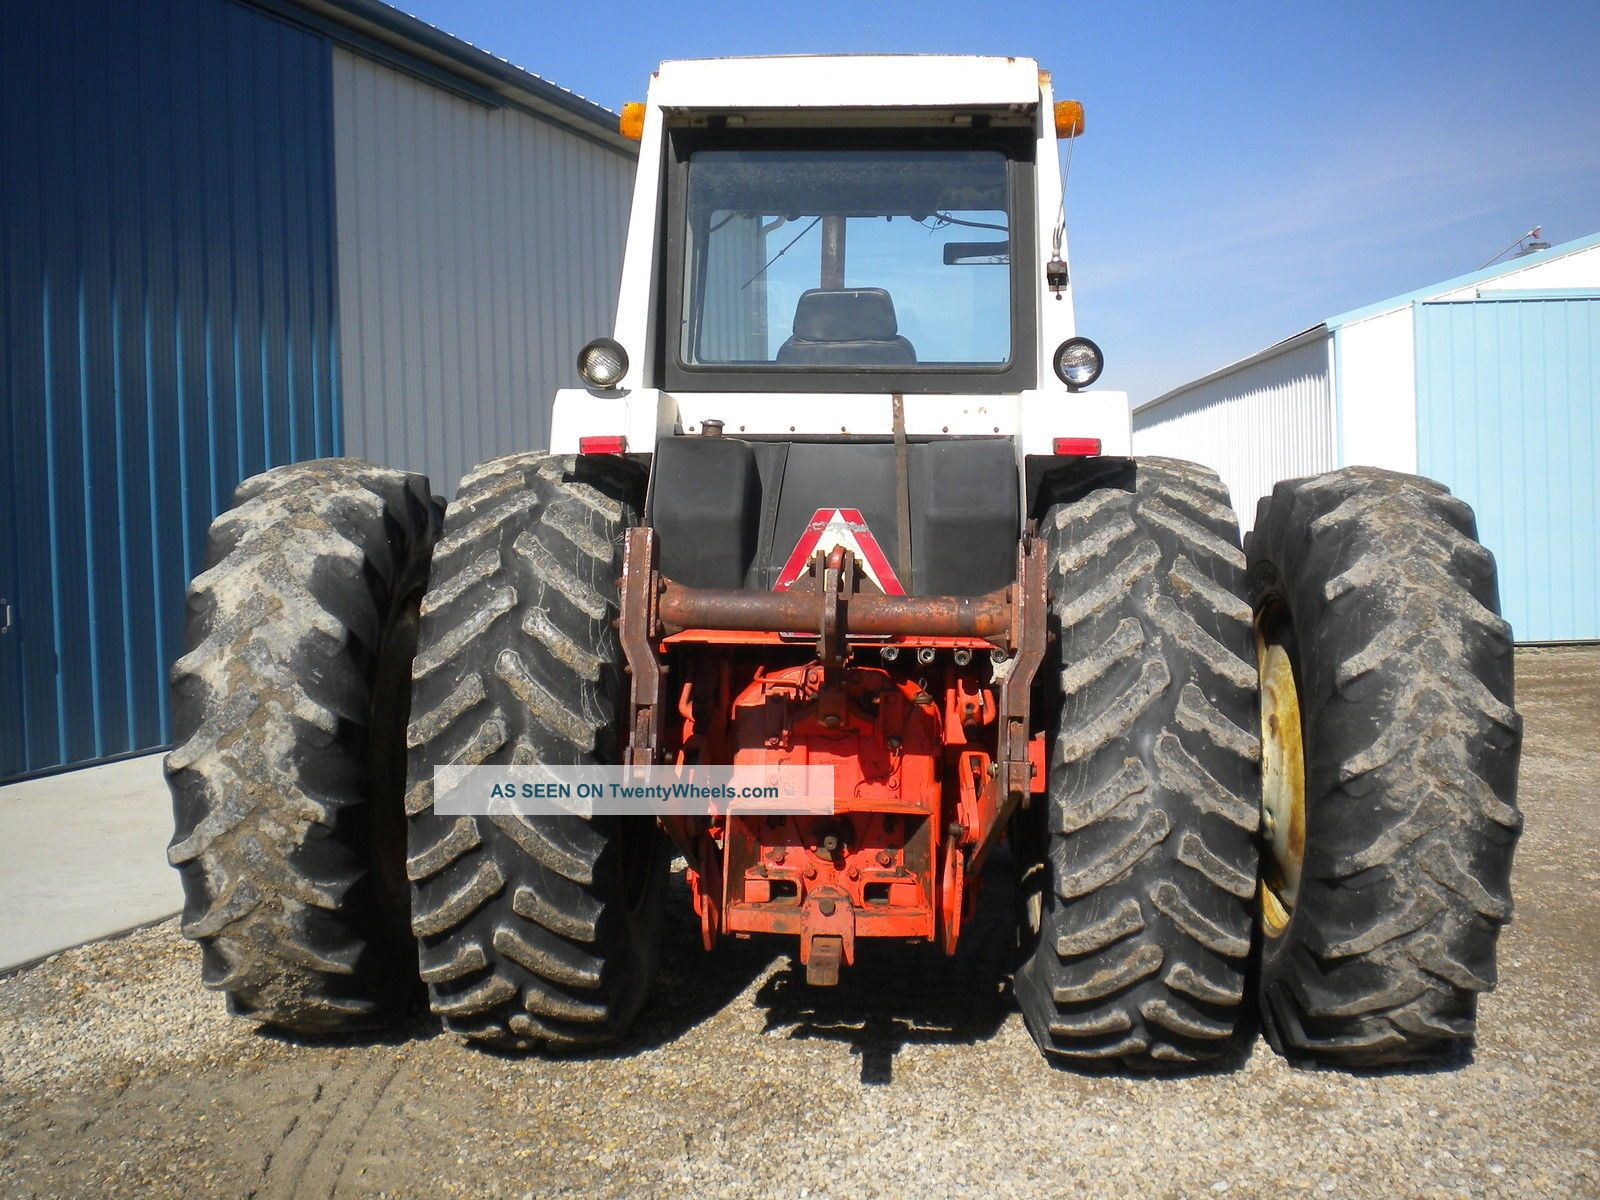 fordson tractor on craigslist with 14447 Case 1370 Diesel Tractor Power Shift Case Ih Good Radial Tires Axle Duals Weight on Search furthermore Ford furthermore 4873 furthermore Gallery skylars snow stuck further Viewtopic.